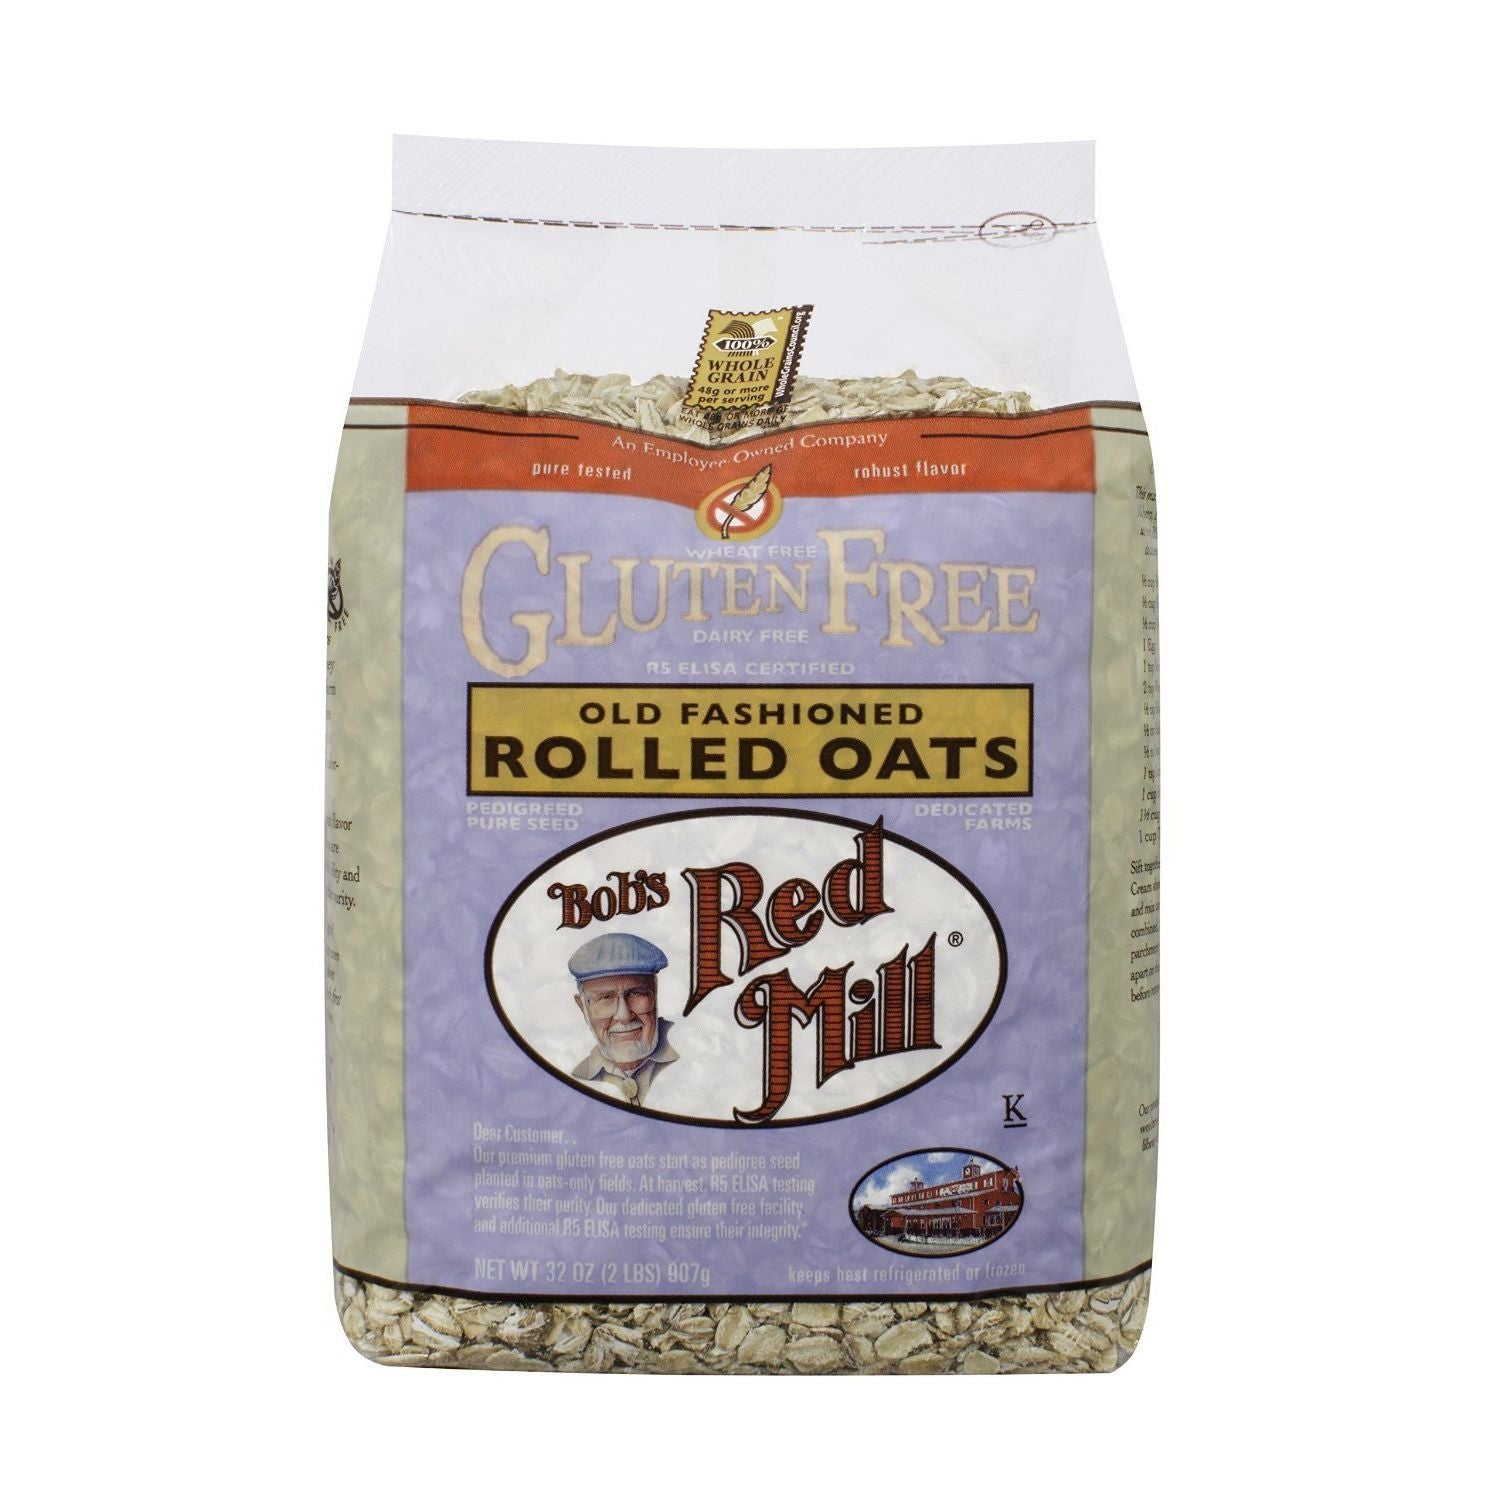 Bob's Red Mill Gluten Free Whole Grain, Rolled Oats, 32 Oz (Pack of 4)